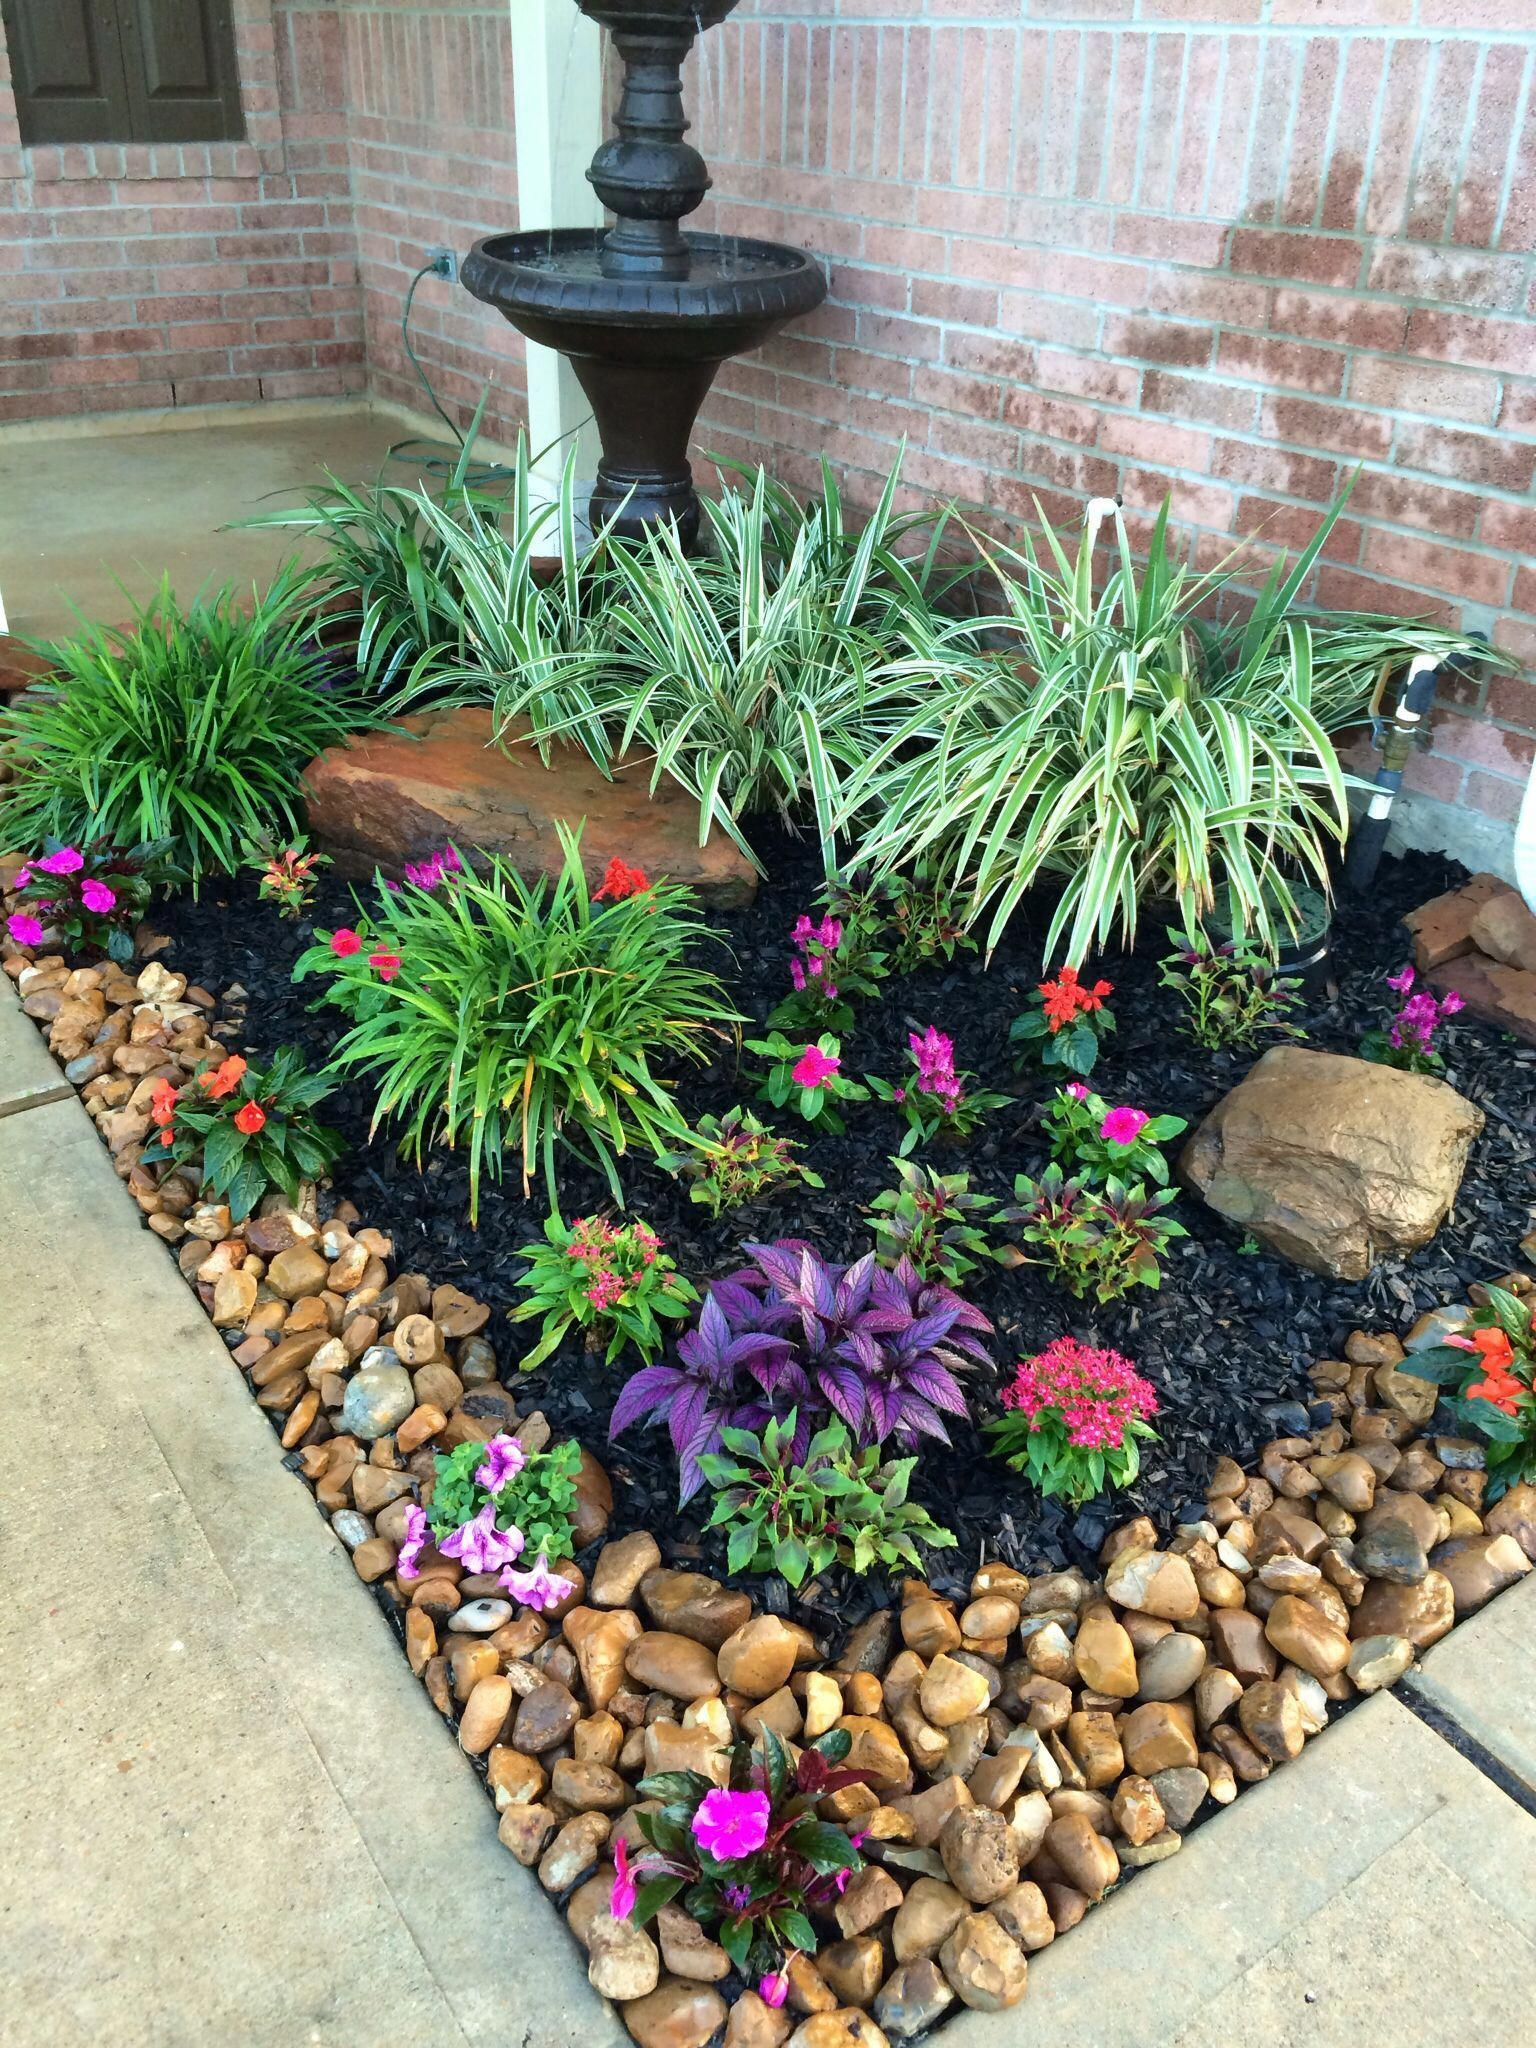 Behind The Weather Gets Warm A Smattering Of Flowers And Flora And Fauna Gives Stone Flower Beds Small Front Yard Landscaping Front Yard Landscaping Design